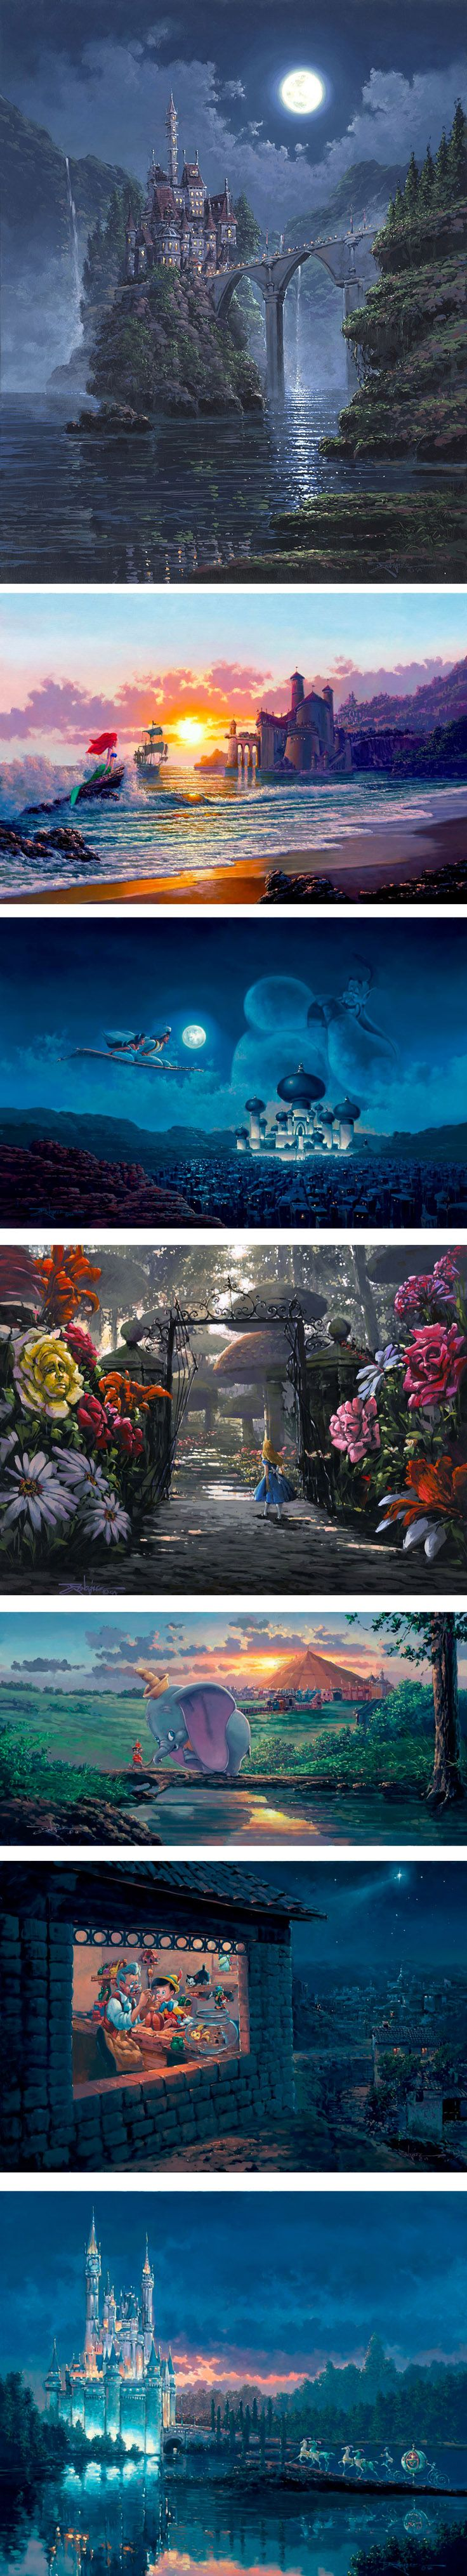 This is one of my very favorite Disney Artists! I'm so glad I found this!!!! :) Stunning disney art by artist Rodel Gonzalez